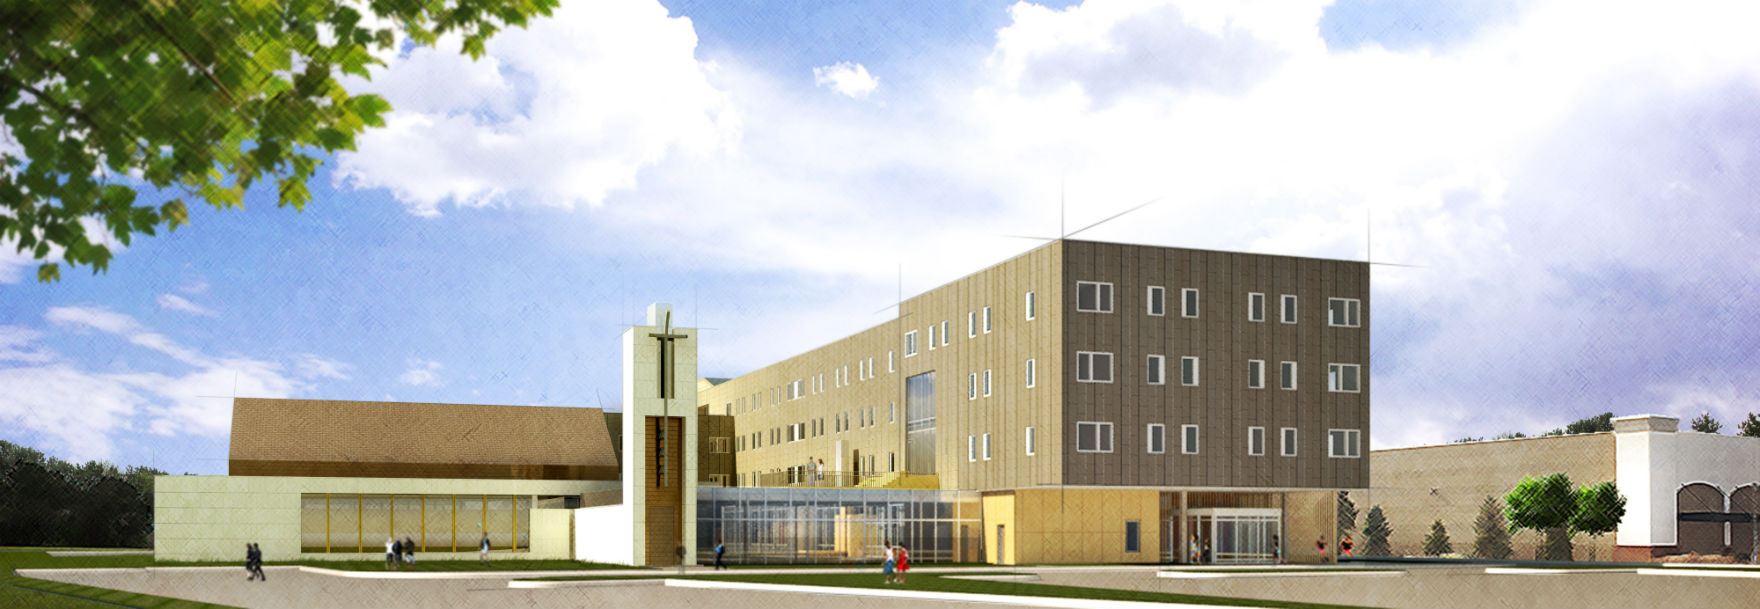 Work on $13M Catholic center near UNO expected to start ...